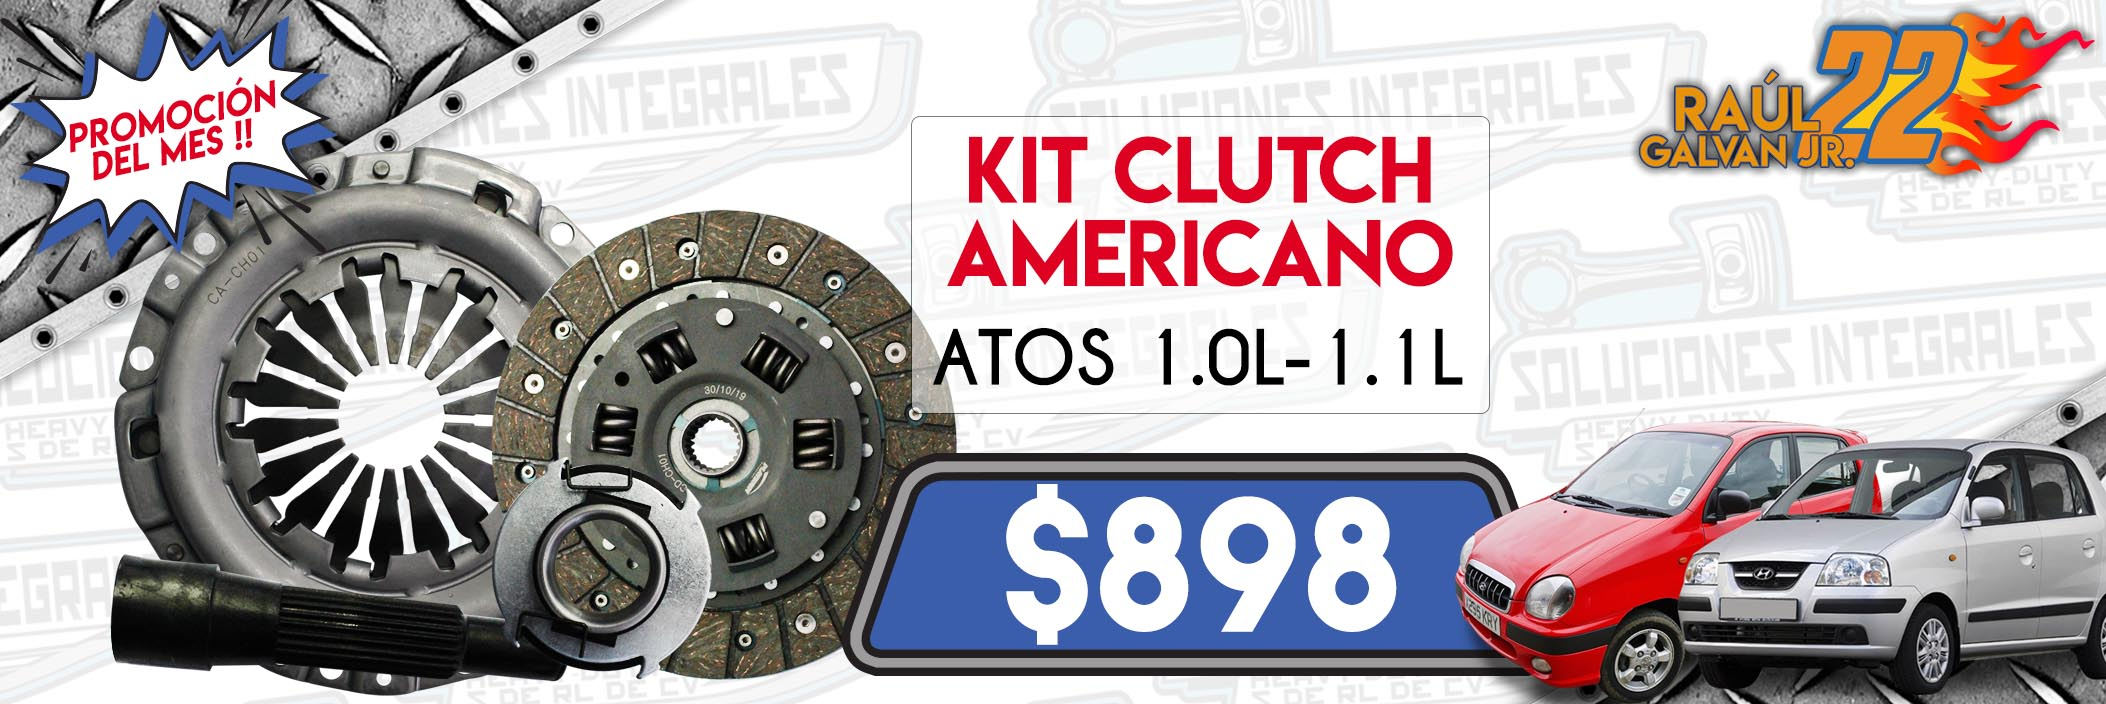 kit clutch americano atos 1.0l-1.1l